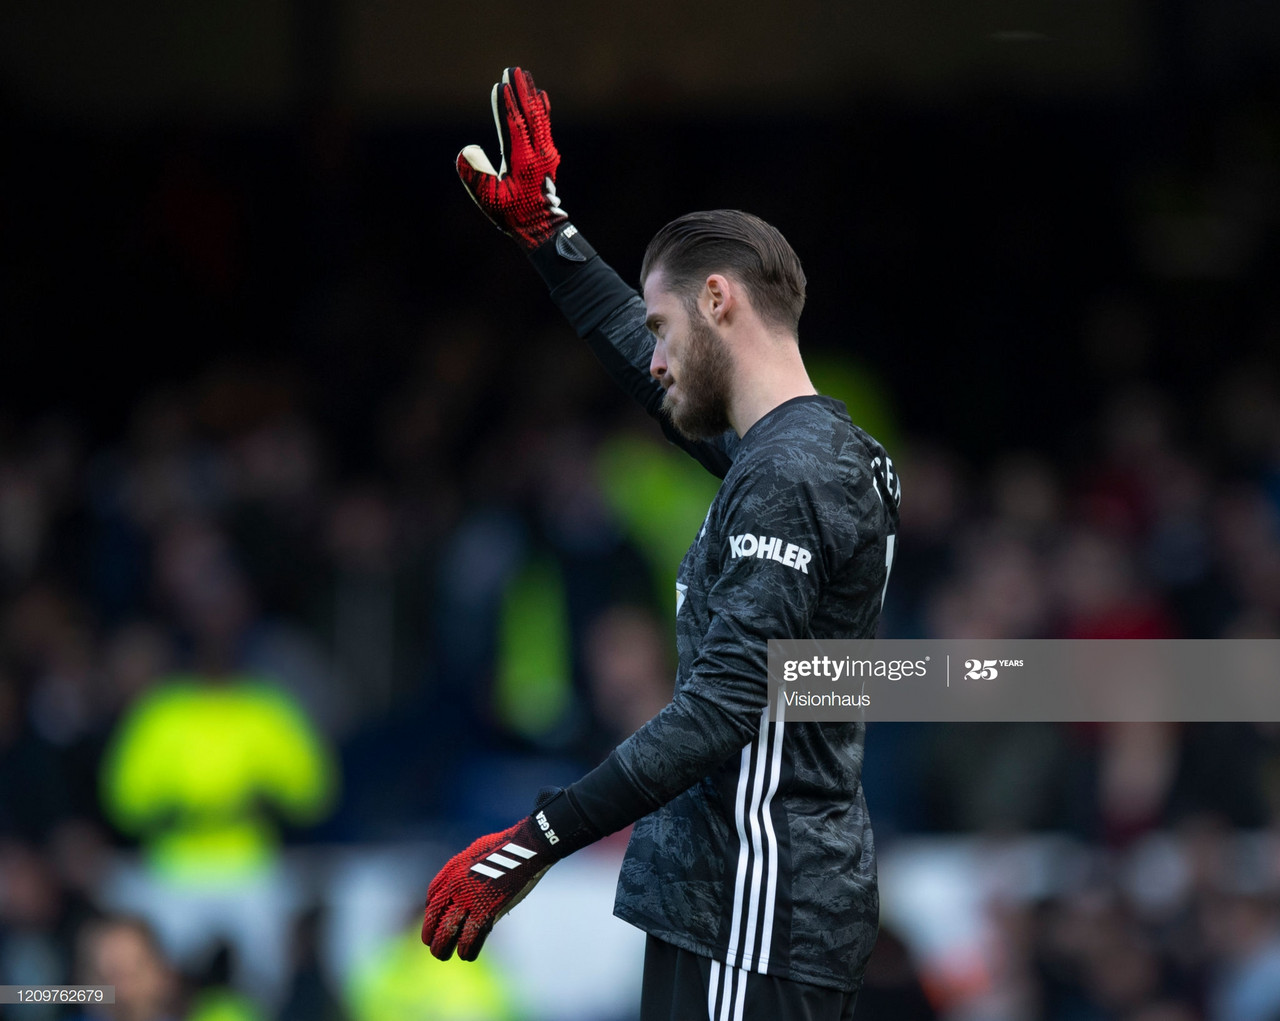 Opinion: Cash in on David de Gea and place faith in Dean Henderson